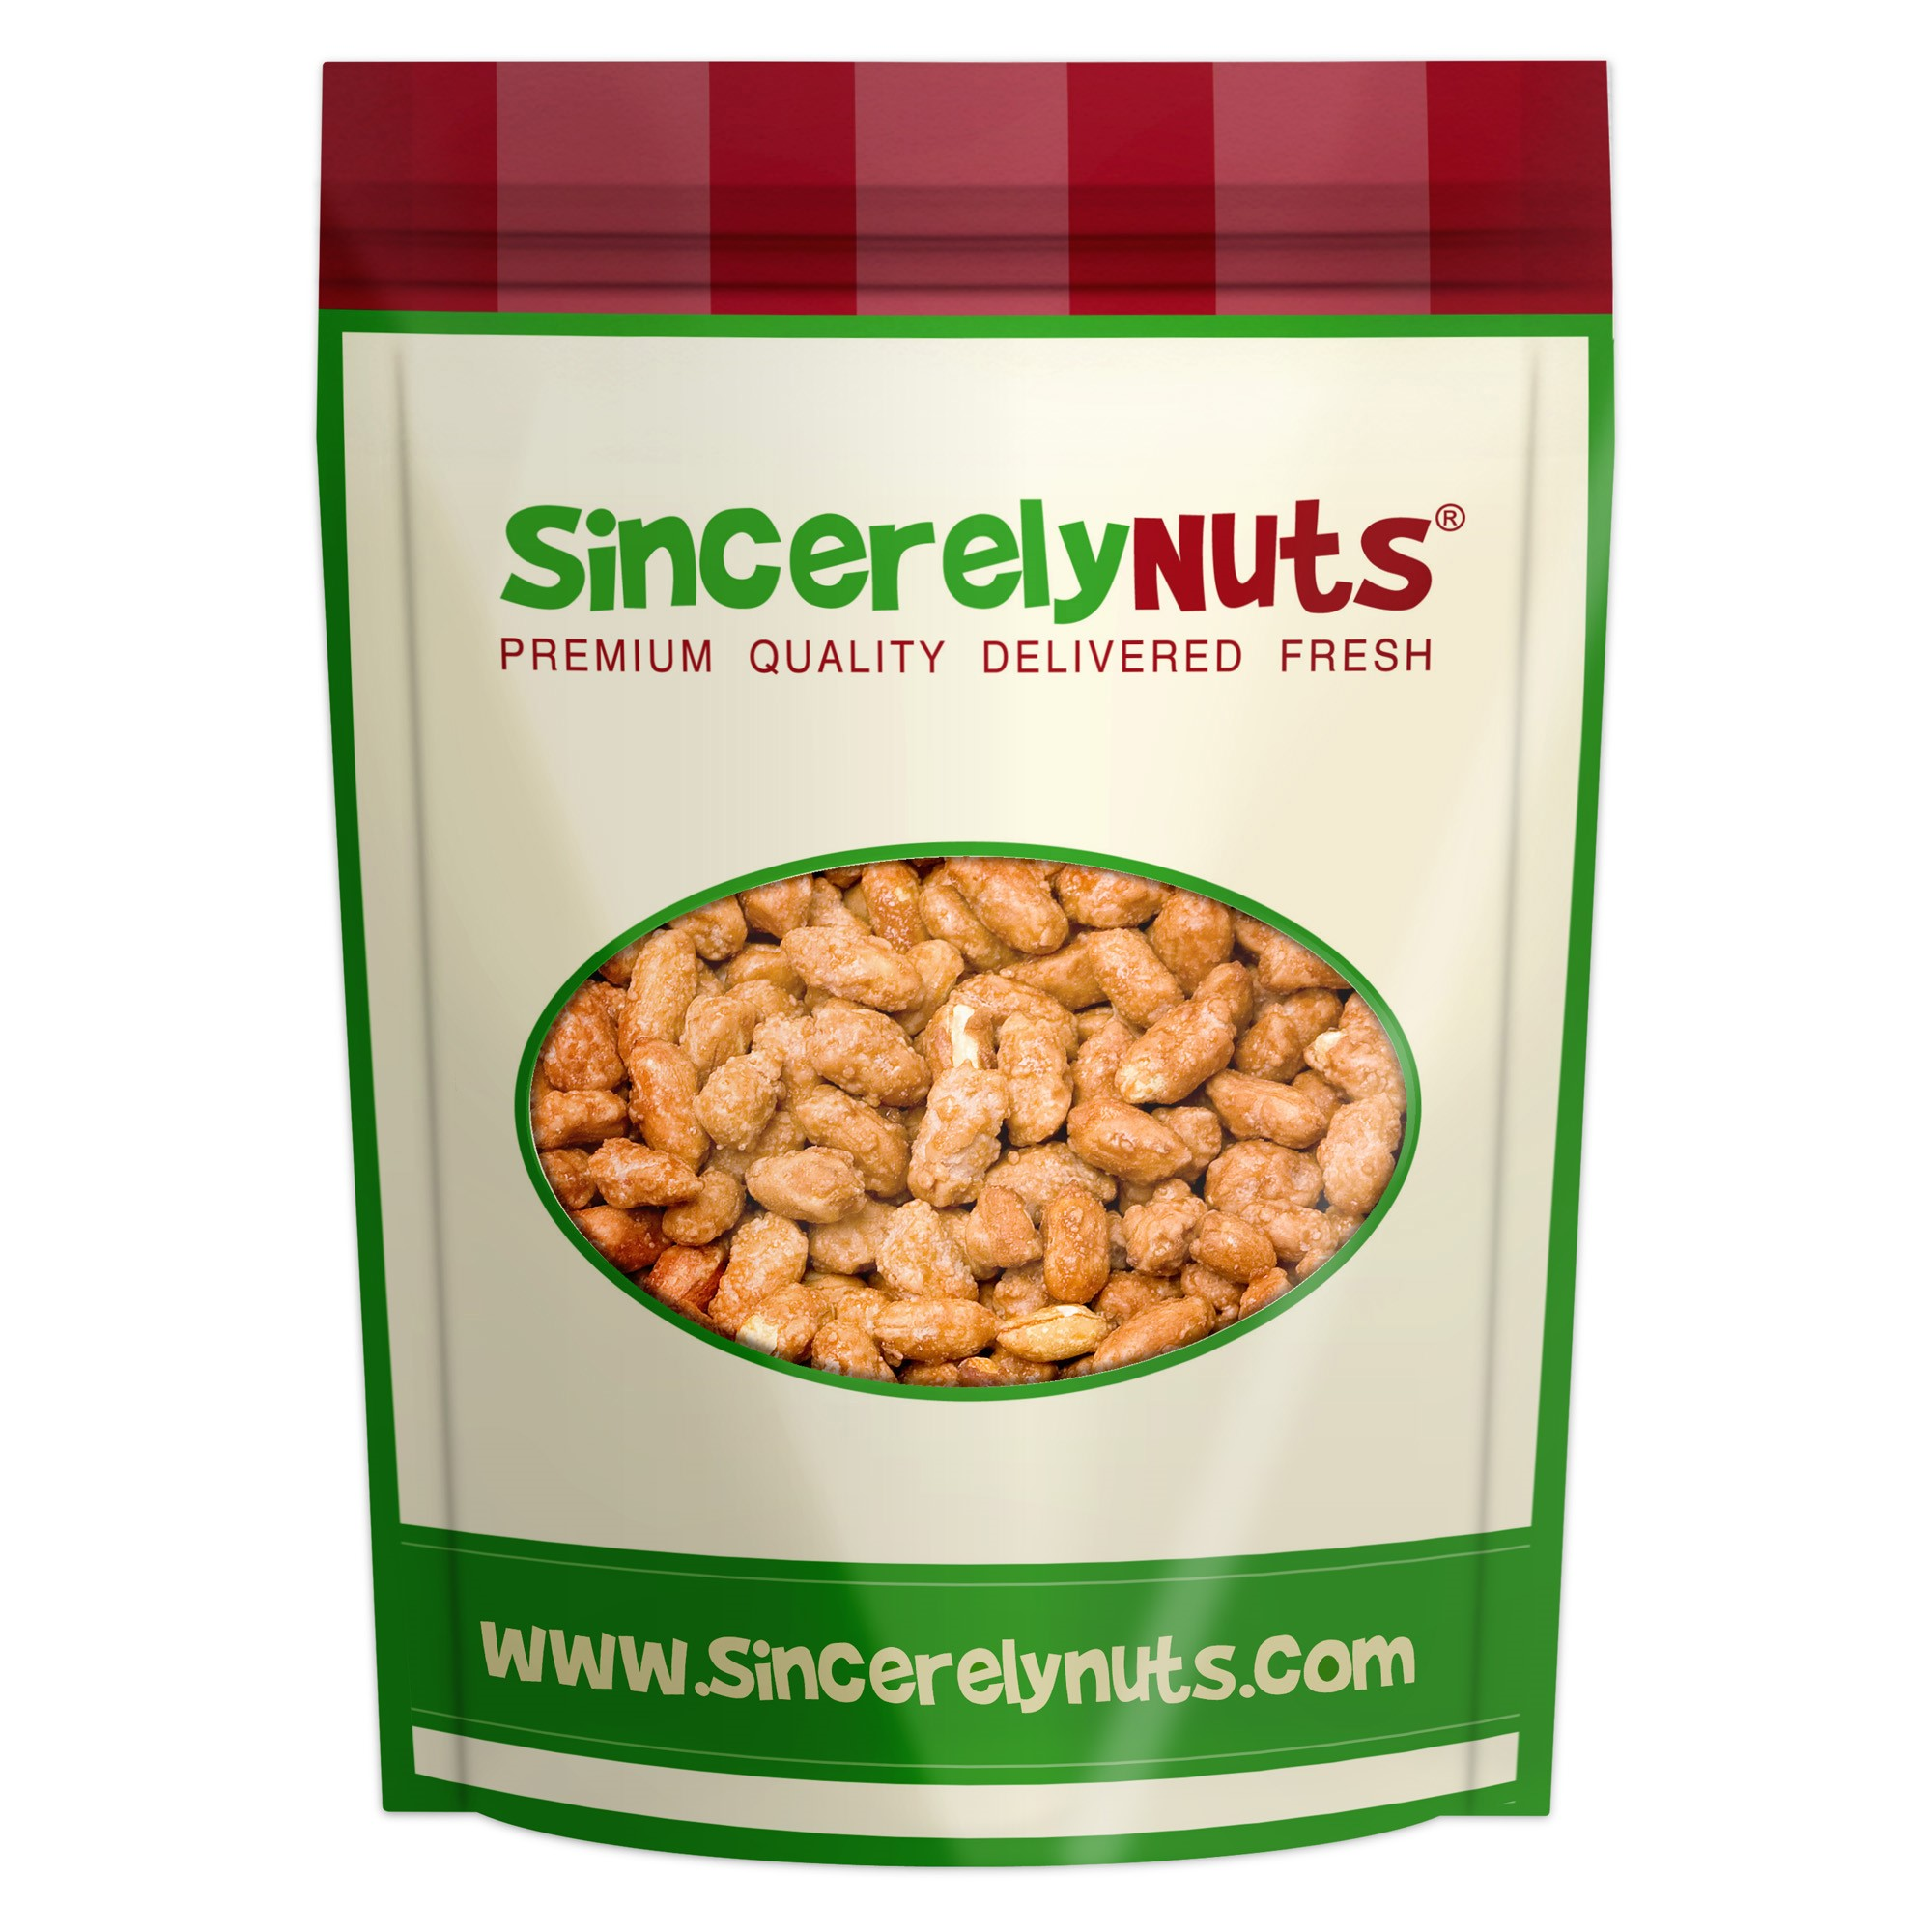 Sincerely Nuts Peanuts, Butter Toffee, 2 lb